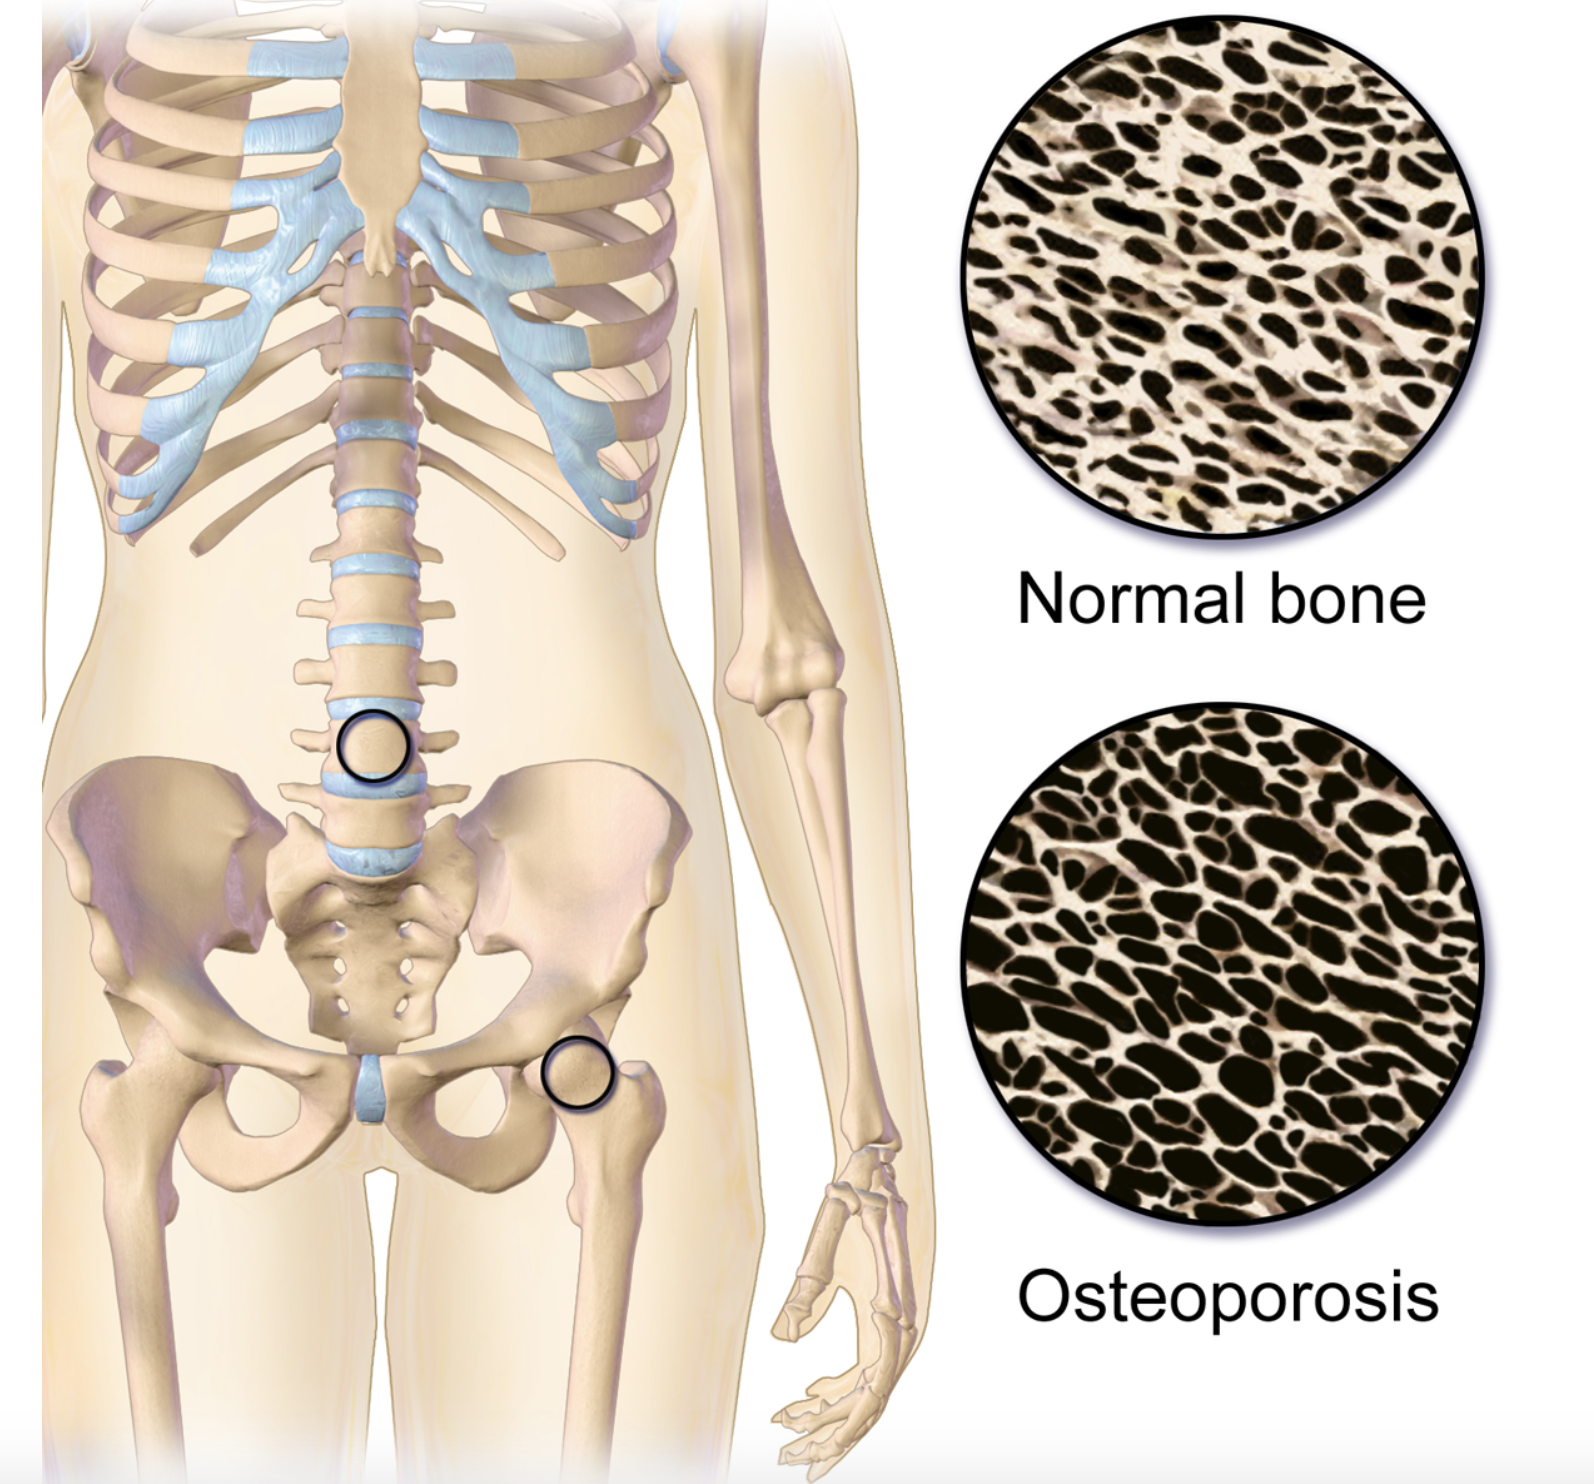 This is an animated image that shows the difference between the structure of normal bone which is less porous and bone with osteoporosis which is more porous.